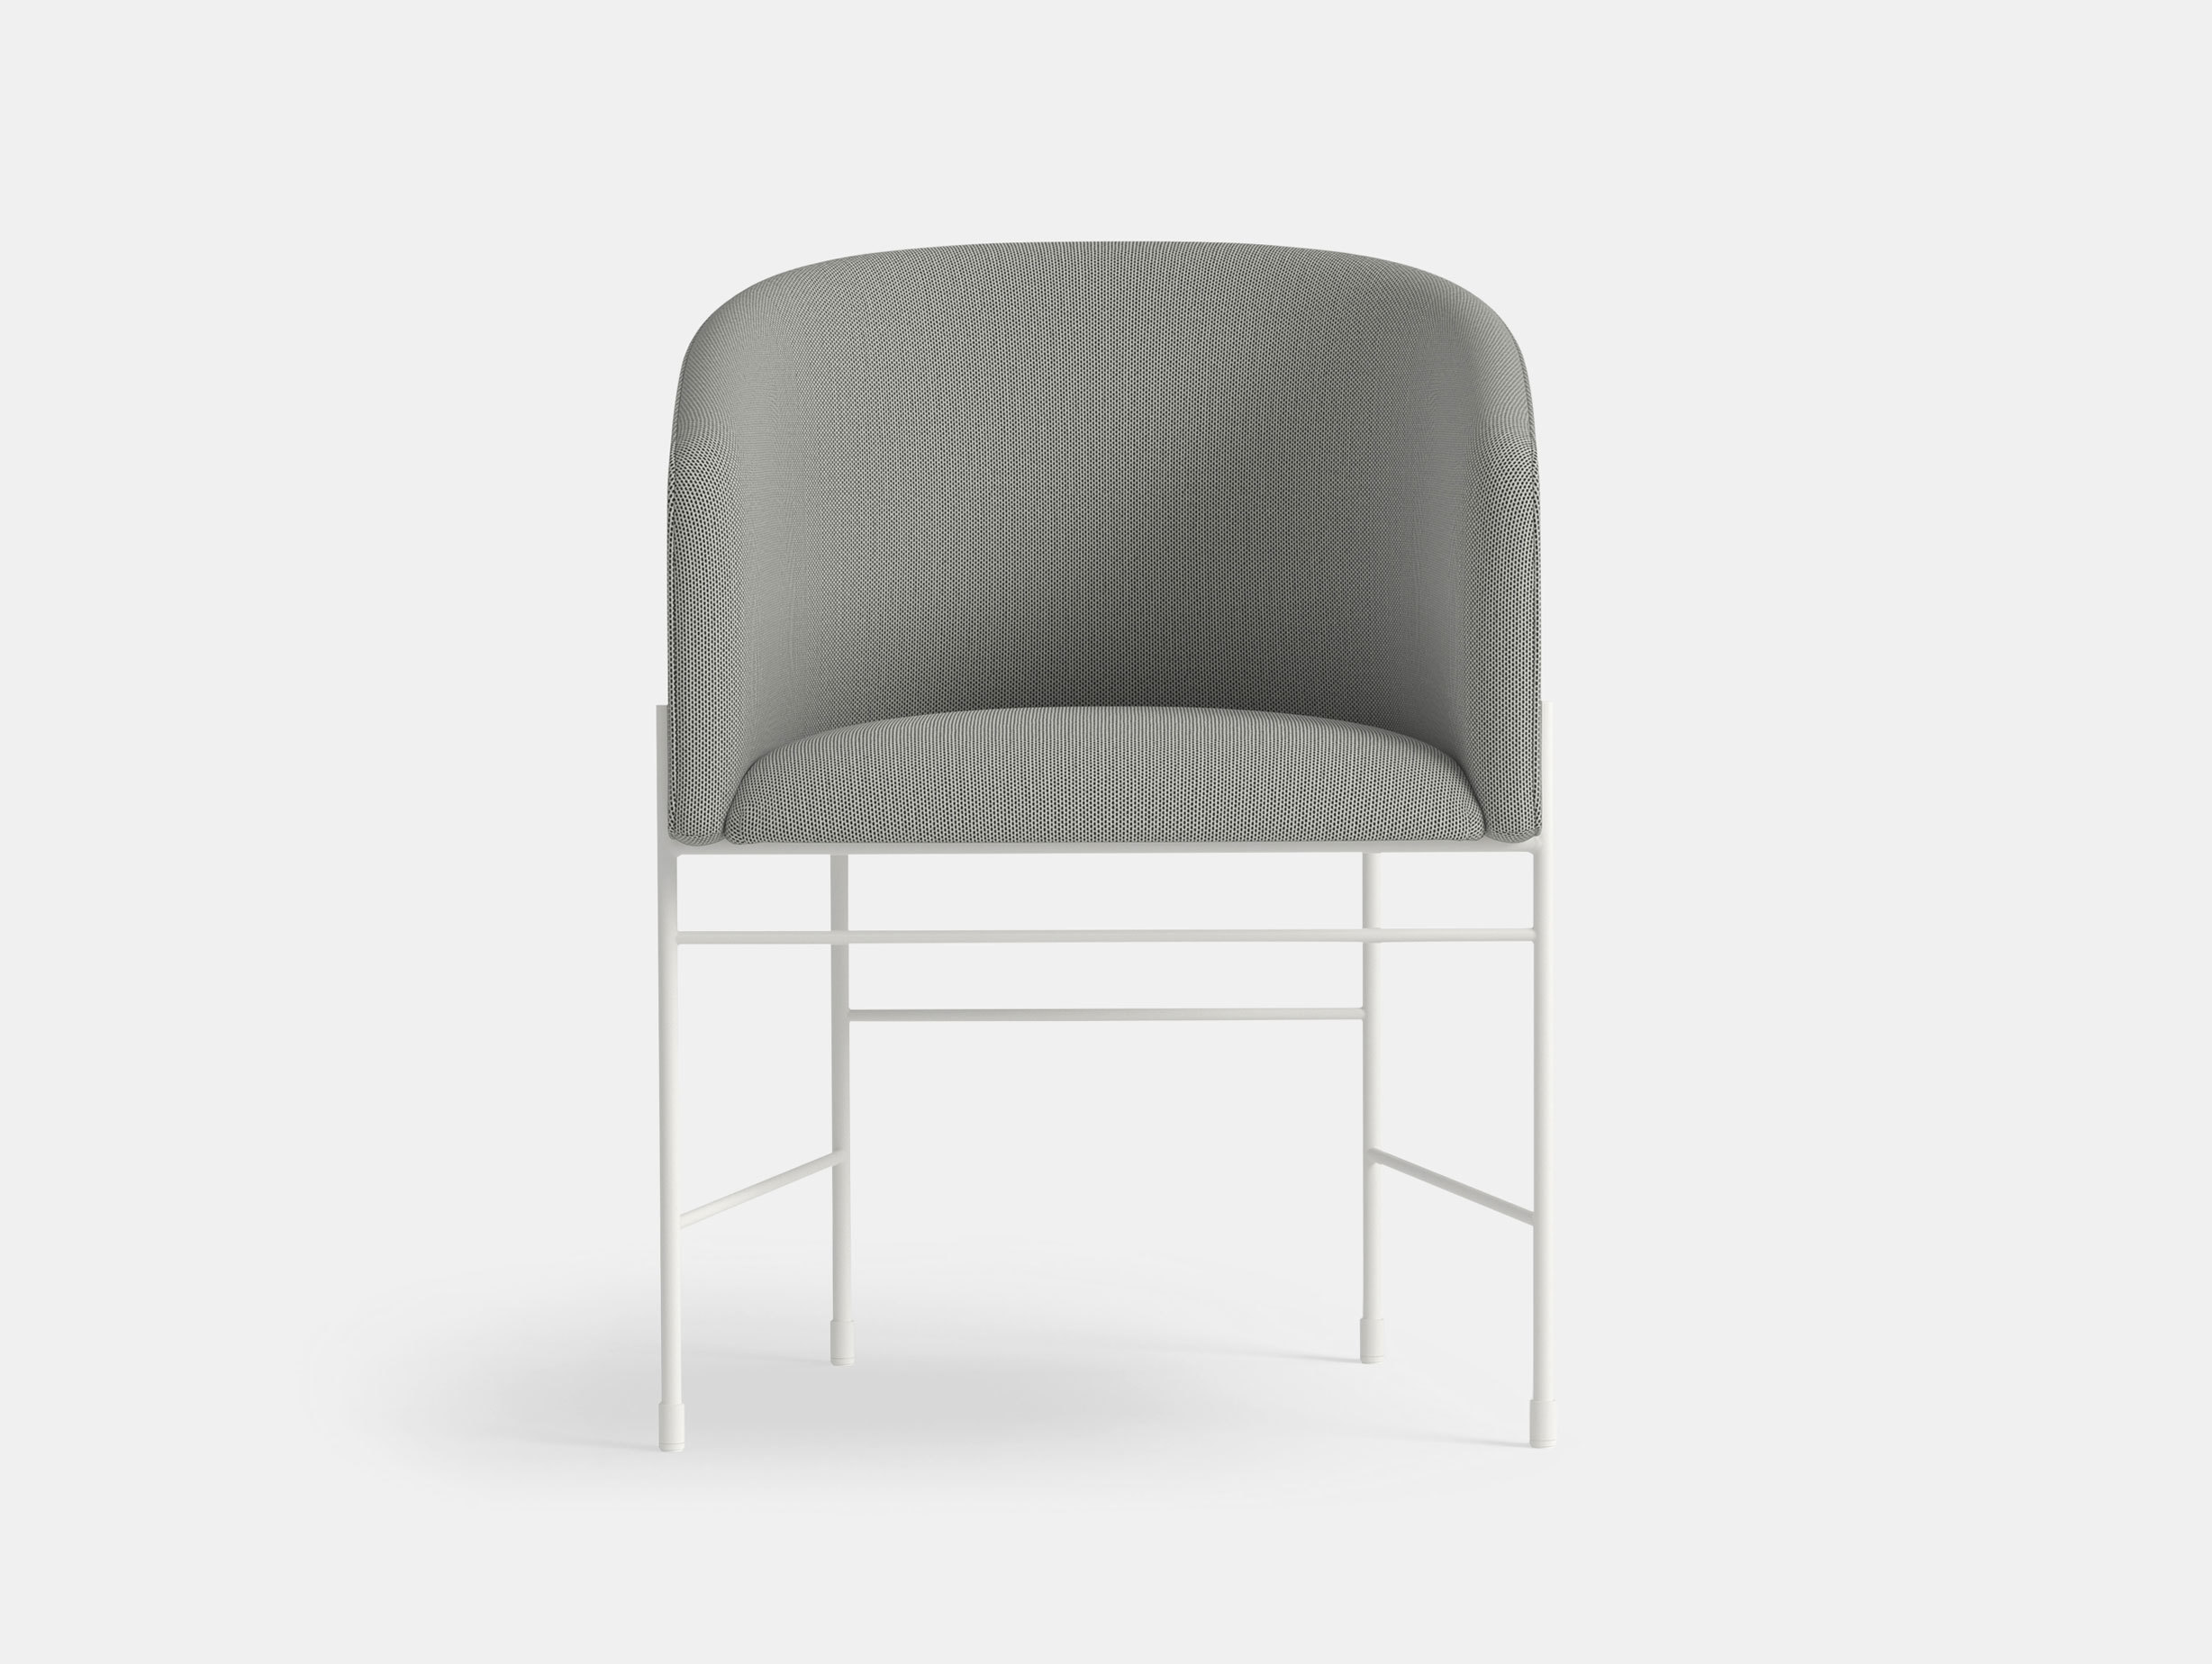 Covent Chair image 3